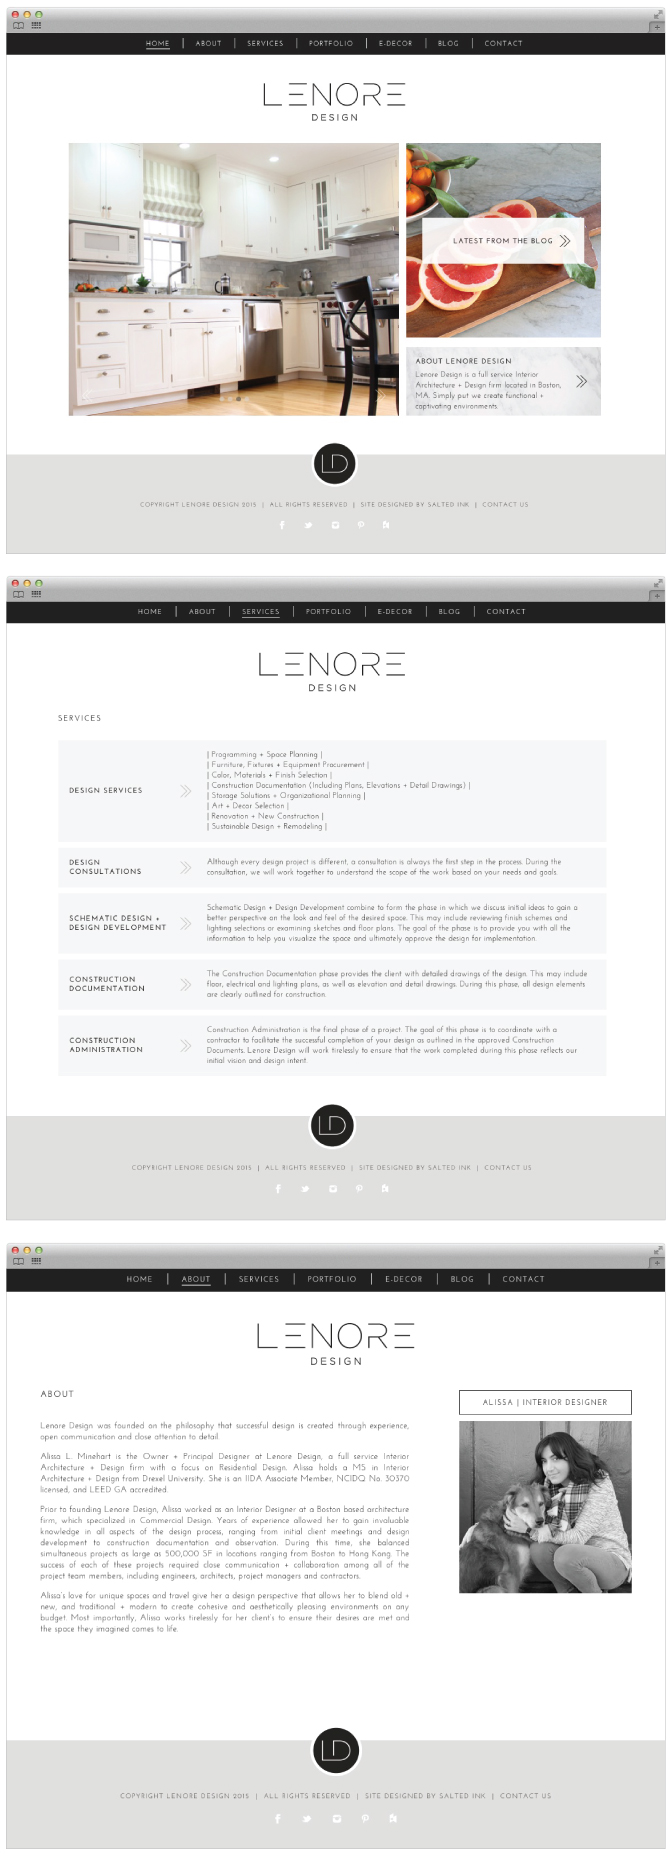 Lenore-Design-Brand-WEBSITE